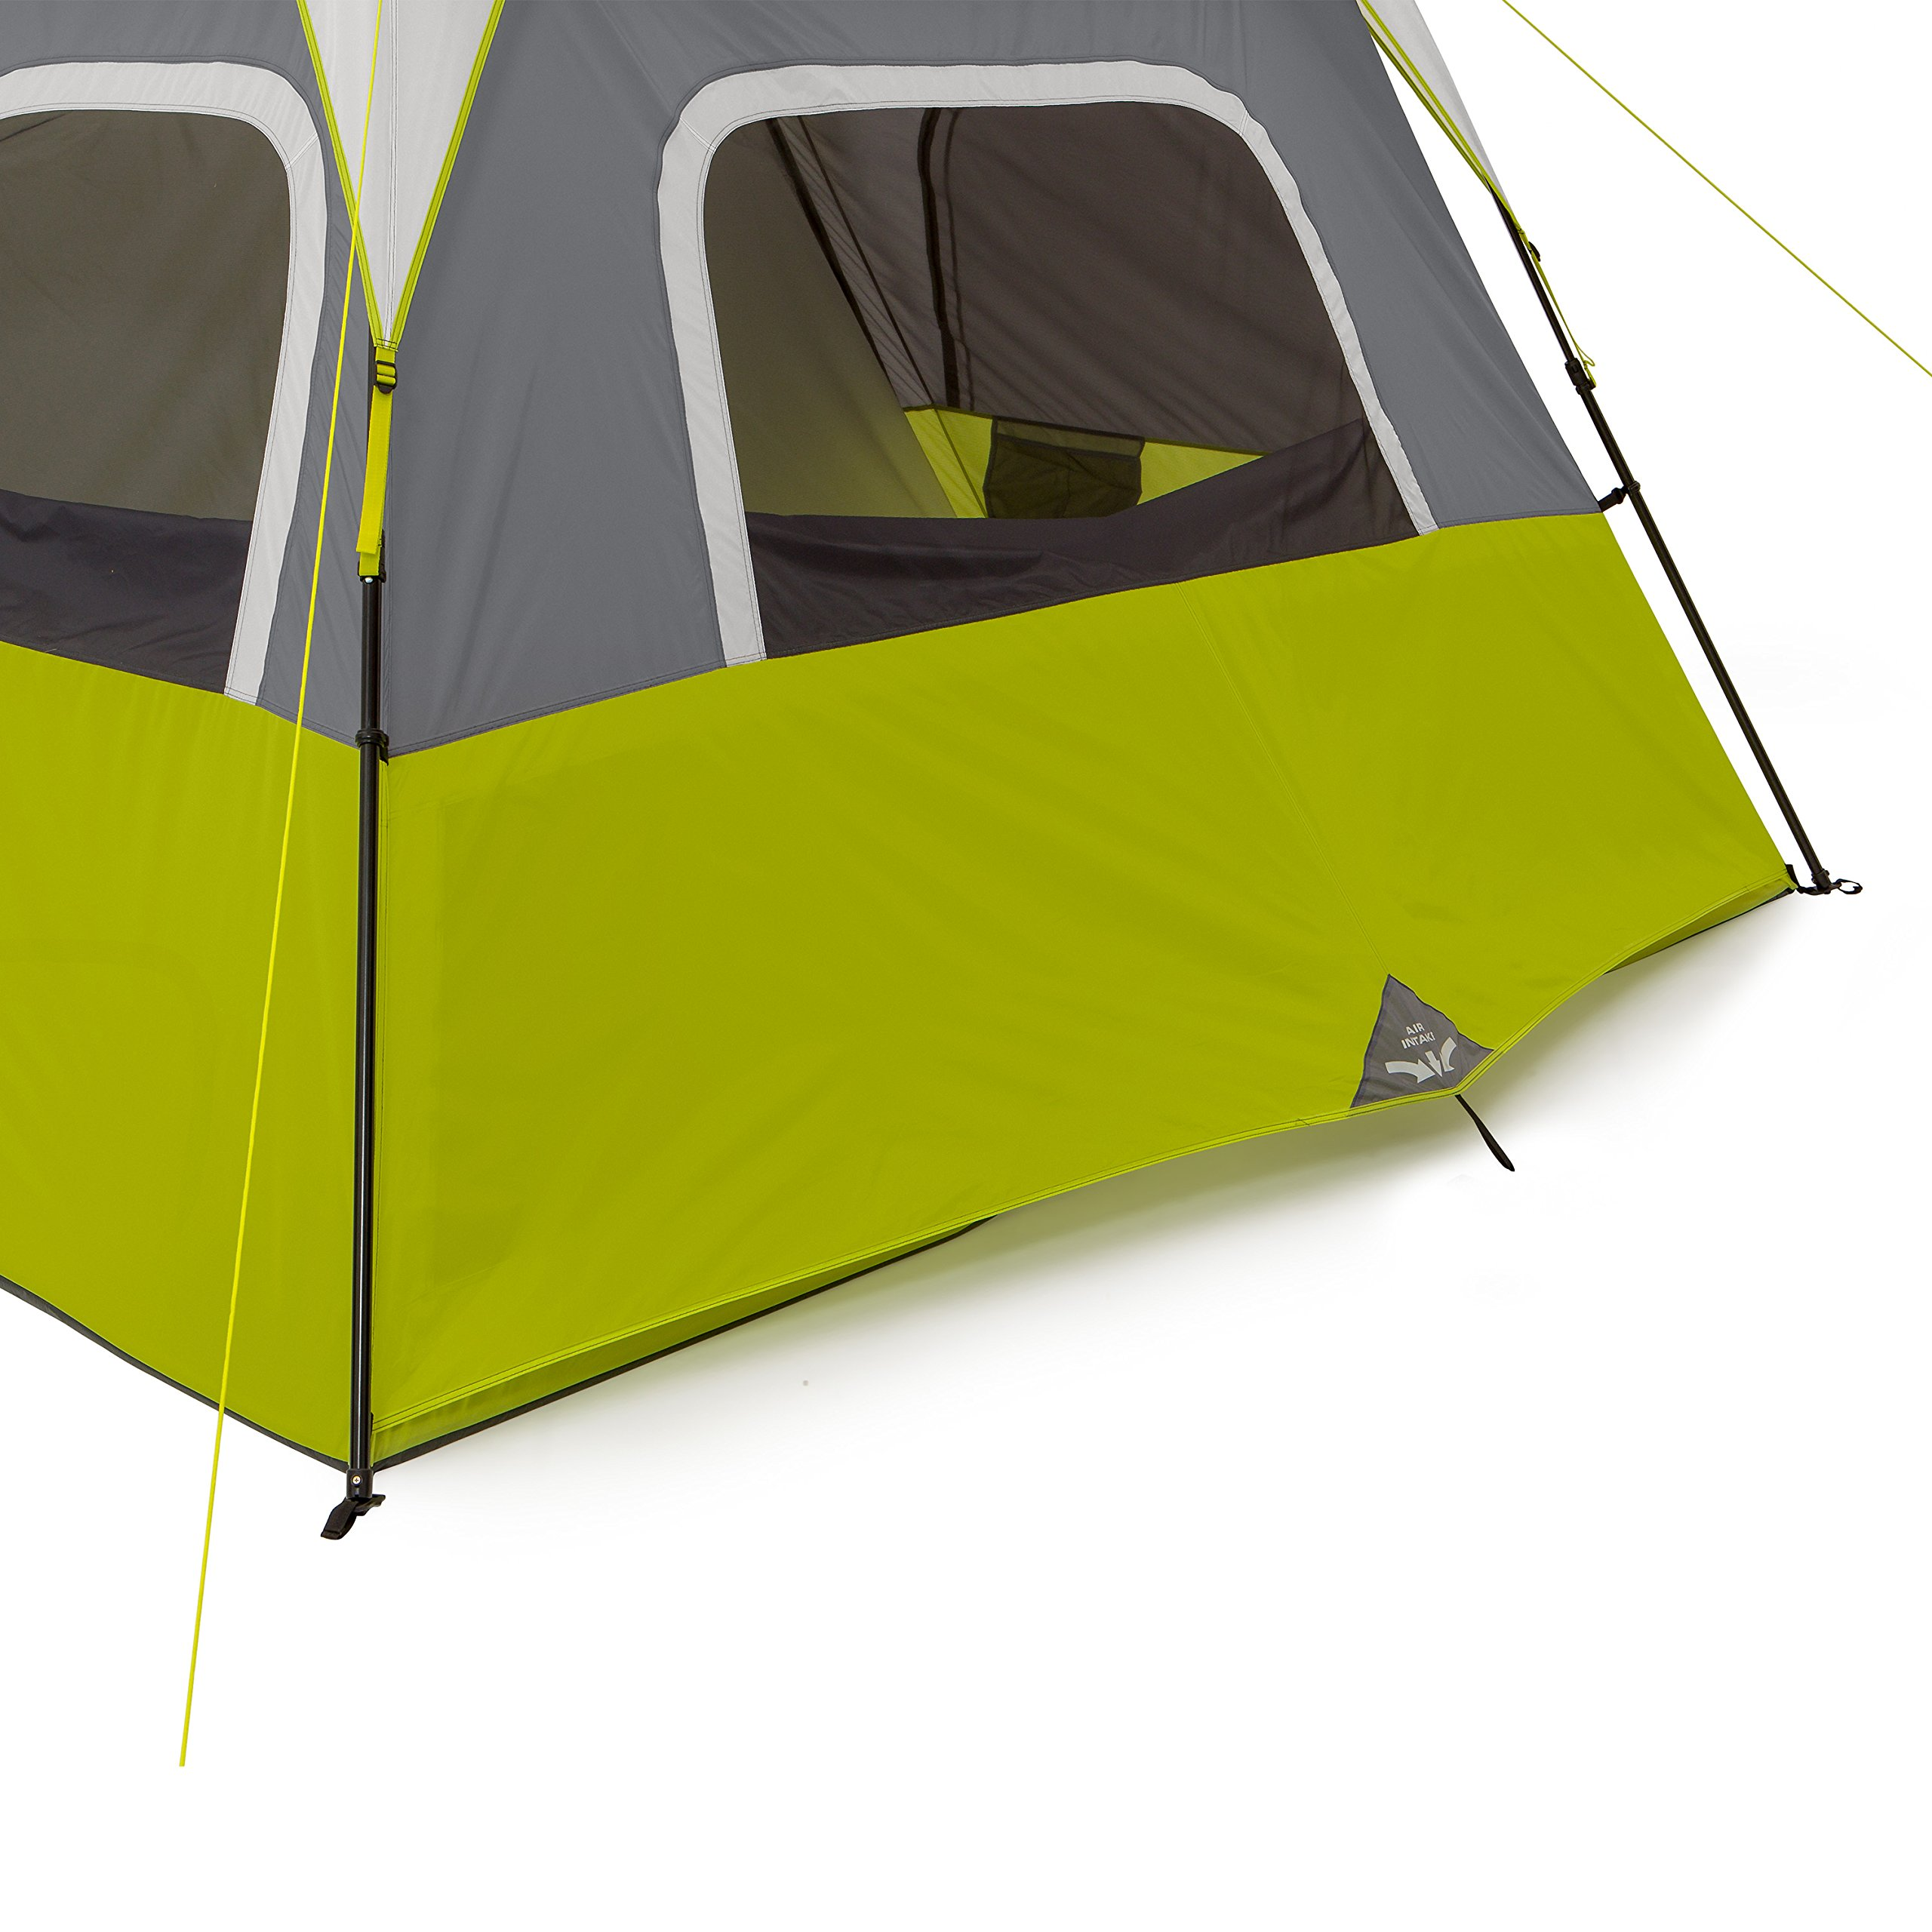 CORE 12 Person Instant Cabin Tent - 18' x 10' by CORE (Image #7)